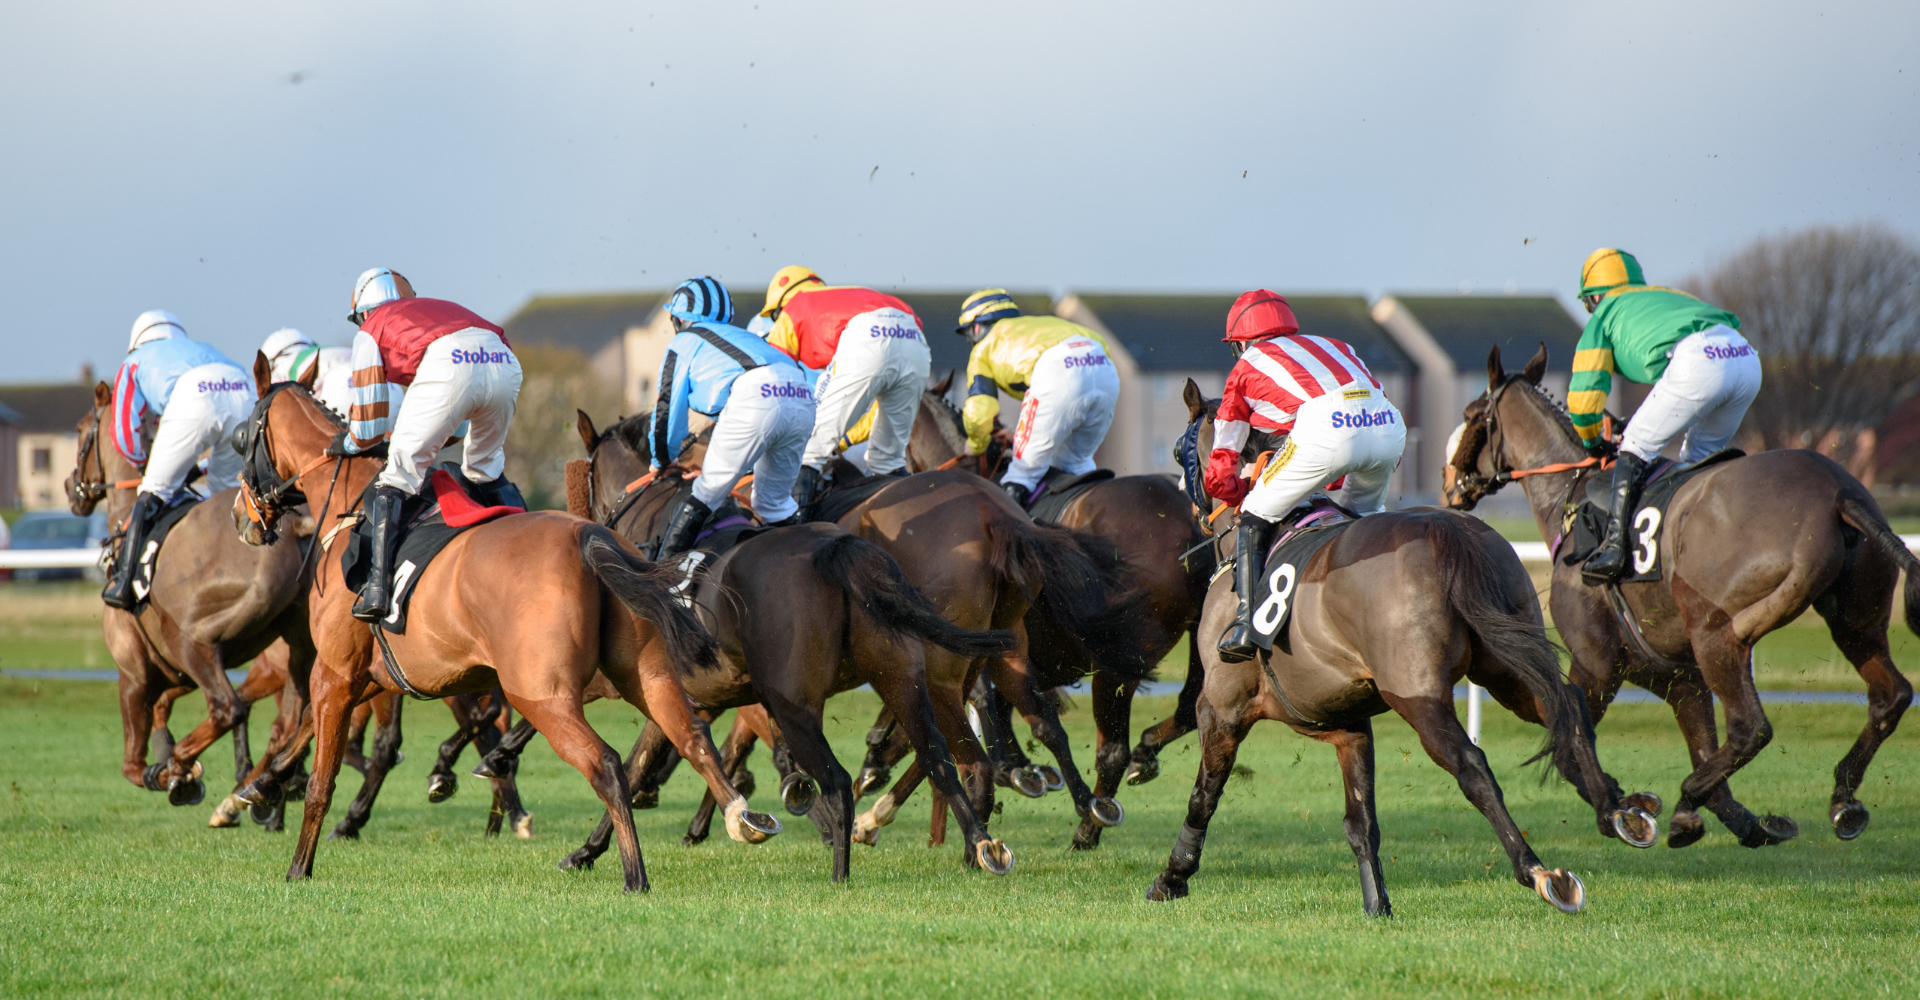 Musselburgh Racecourse Has Been Deemed To Be Safe For Racing And In Excellent Condition Musselburgh Racecourse